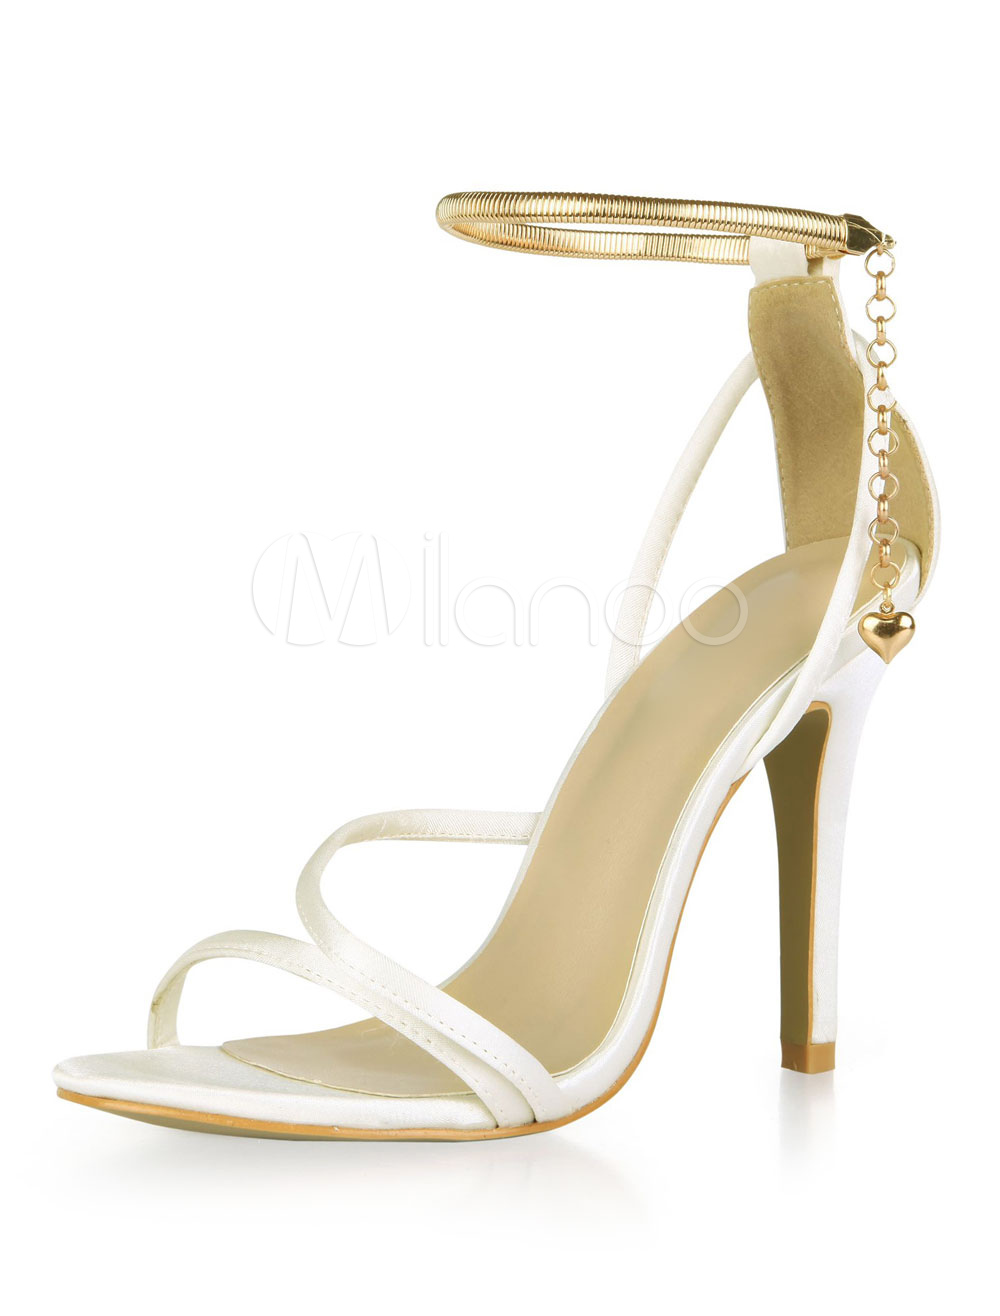 Ivory Wedding Shoes High Heel Strappy Chain Bridal Shoes